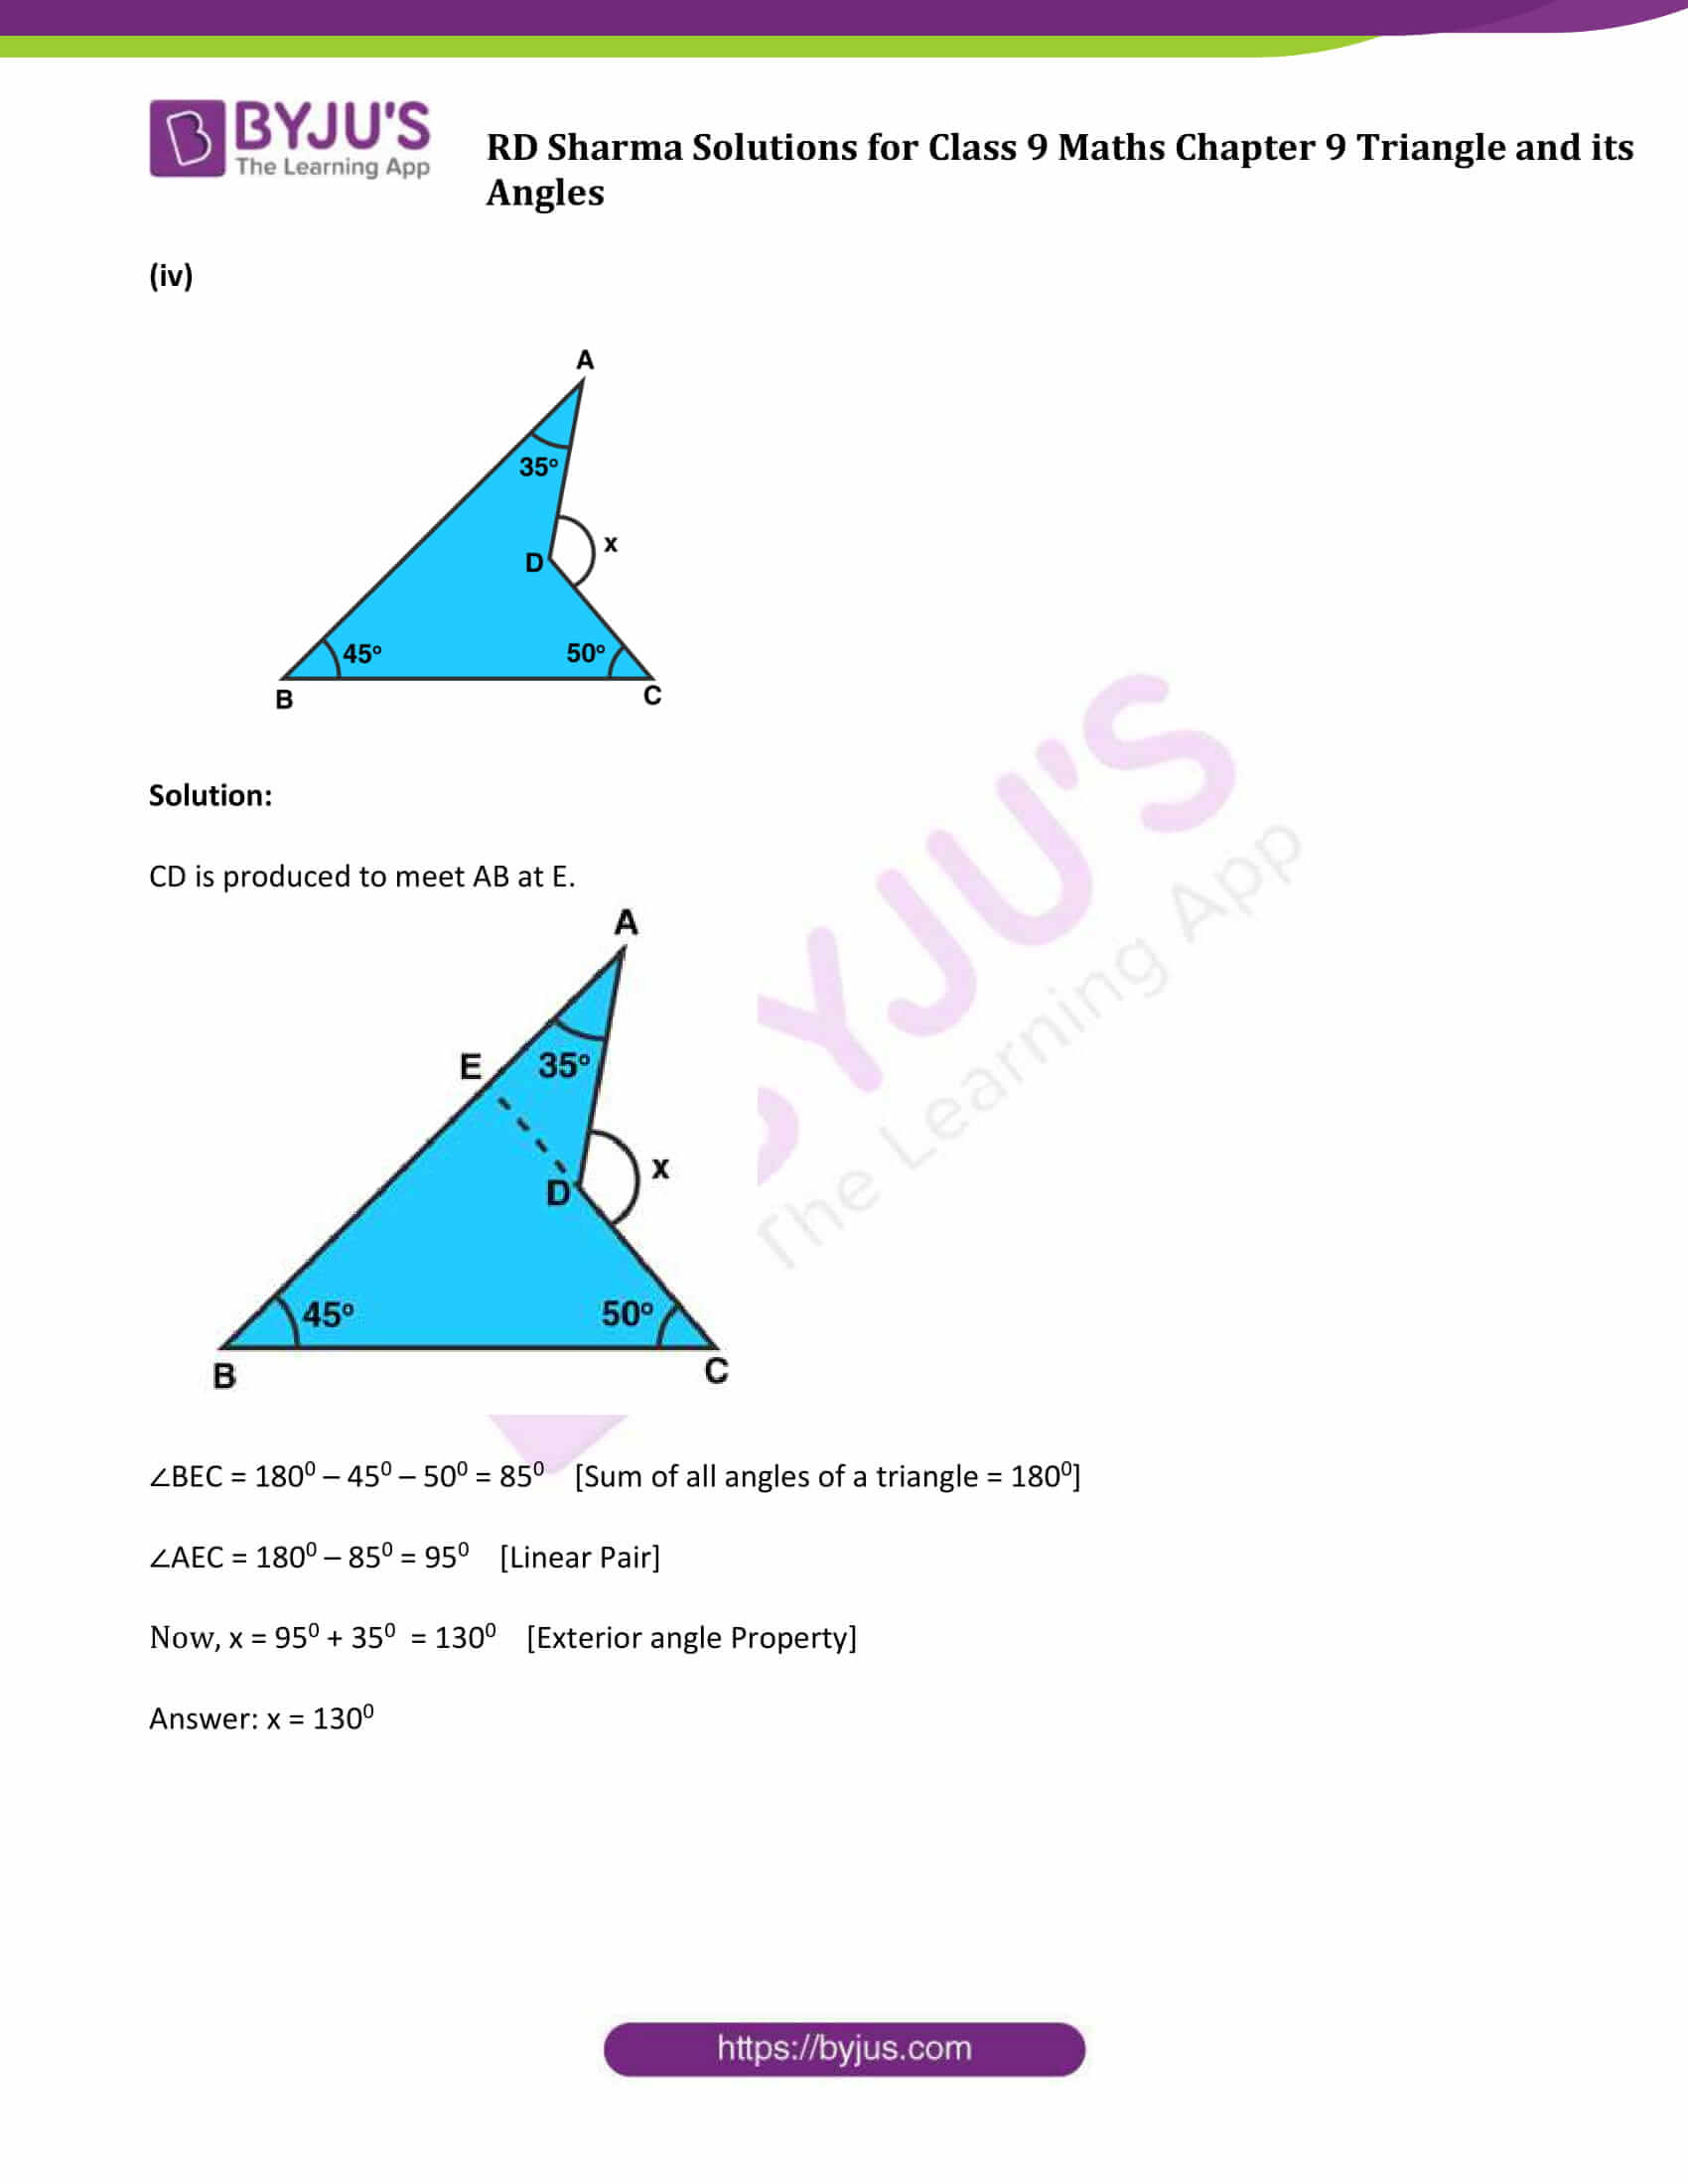 RD Sharma Solution class 9 Maths Chapter 9 Triangle and its Angles 09